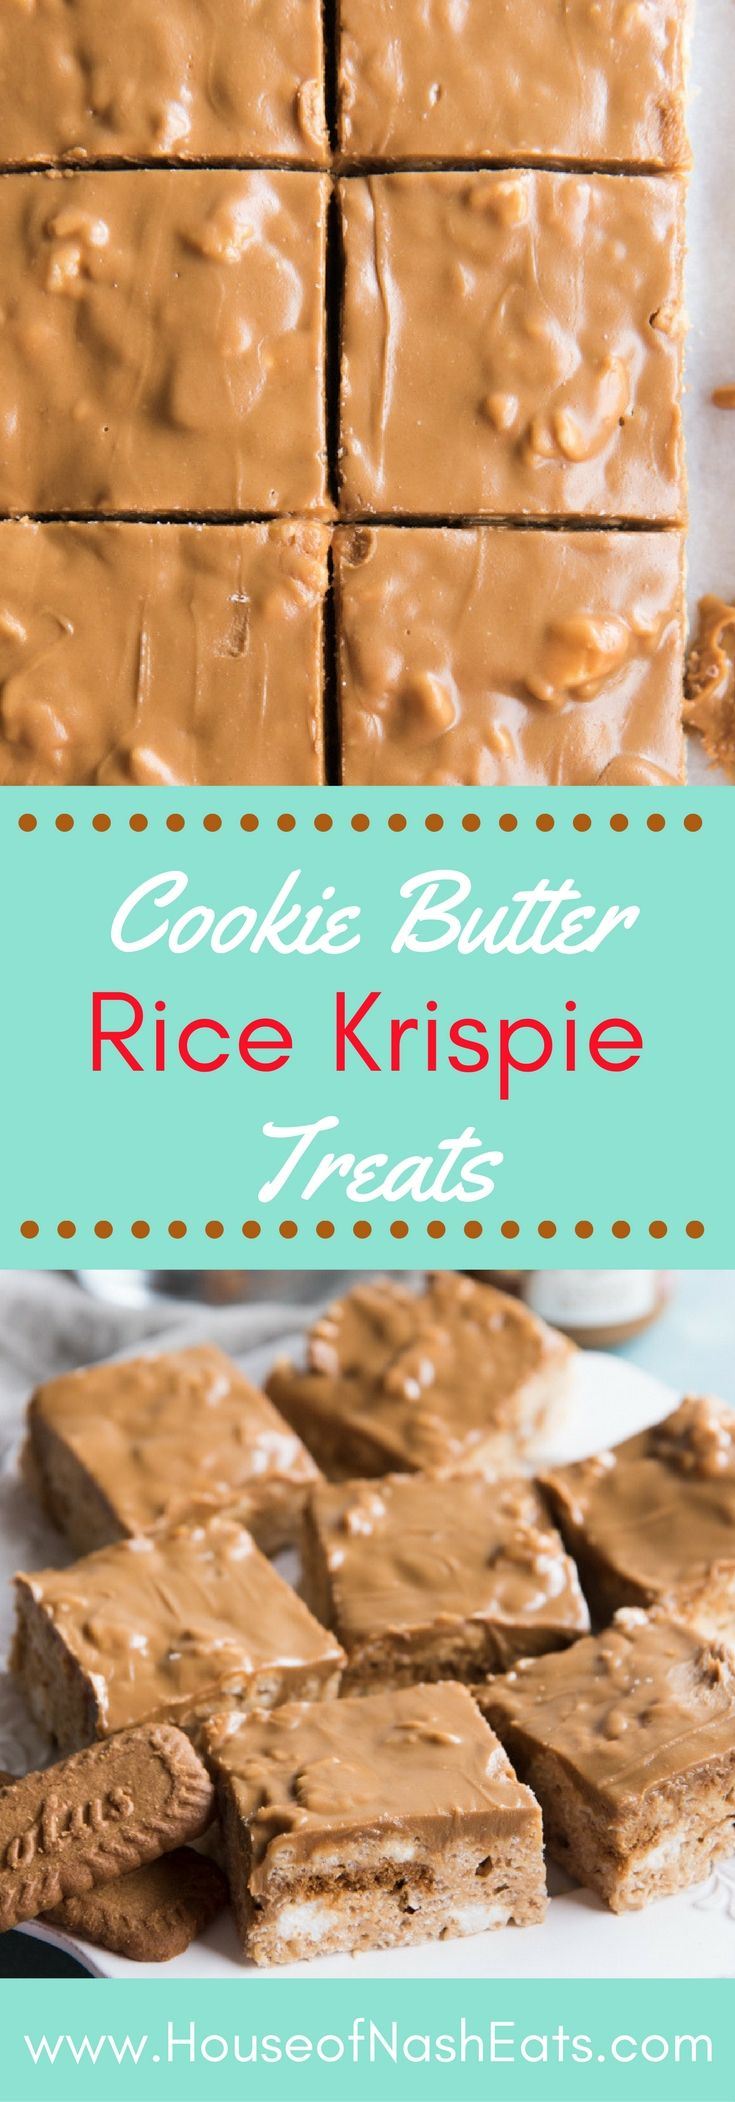 These Cookie Butter Rice Krispie Treats take a simple, basic rice krispie treat to a whole other level with actual chunks of Biscoff cookies and cookie butter mixed into the marshmallow rice krispie base, and a layer of cookie butter glaze over the top! Perfect for bake sales, potlucks, picnics, holidays, and more!